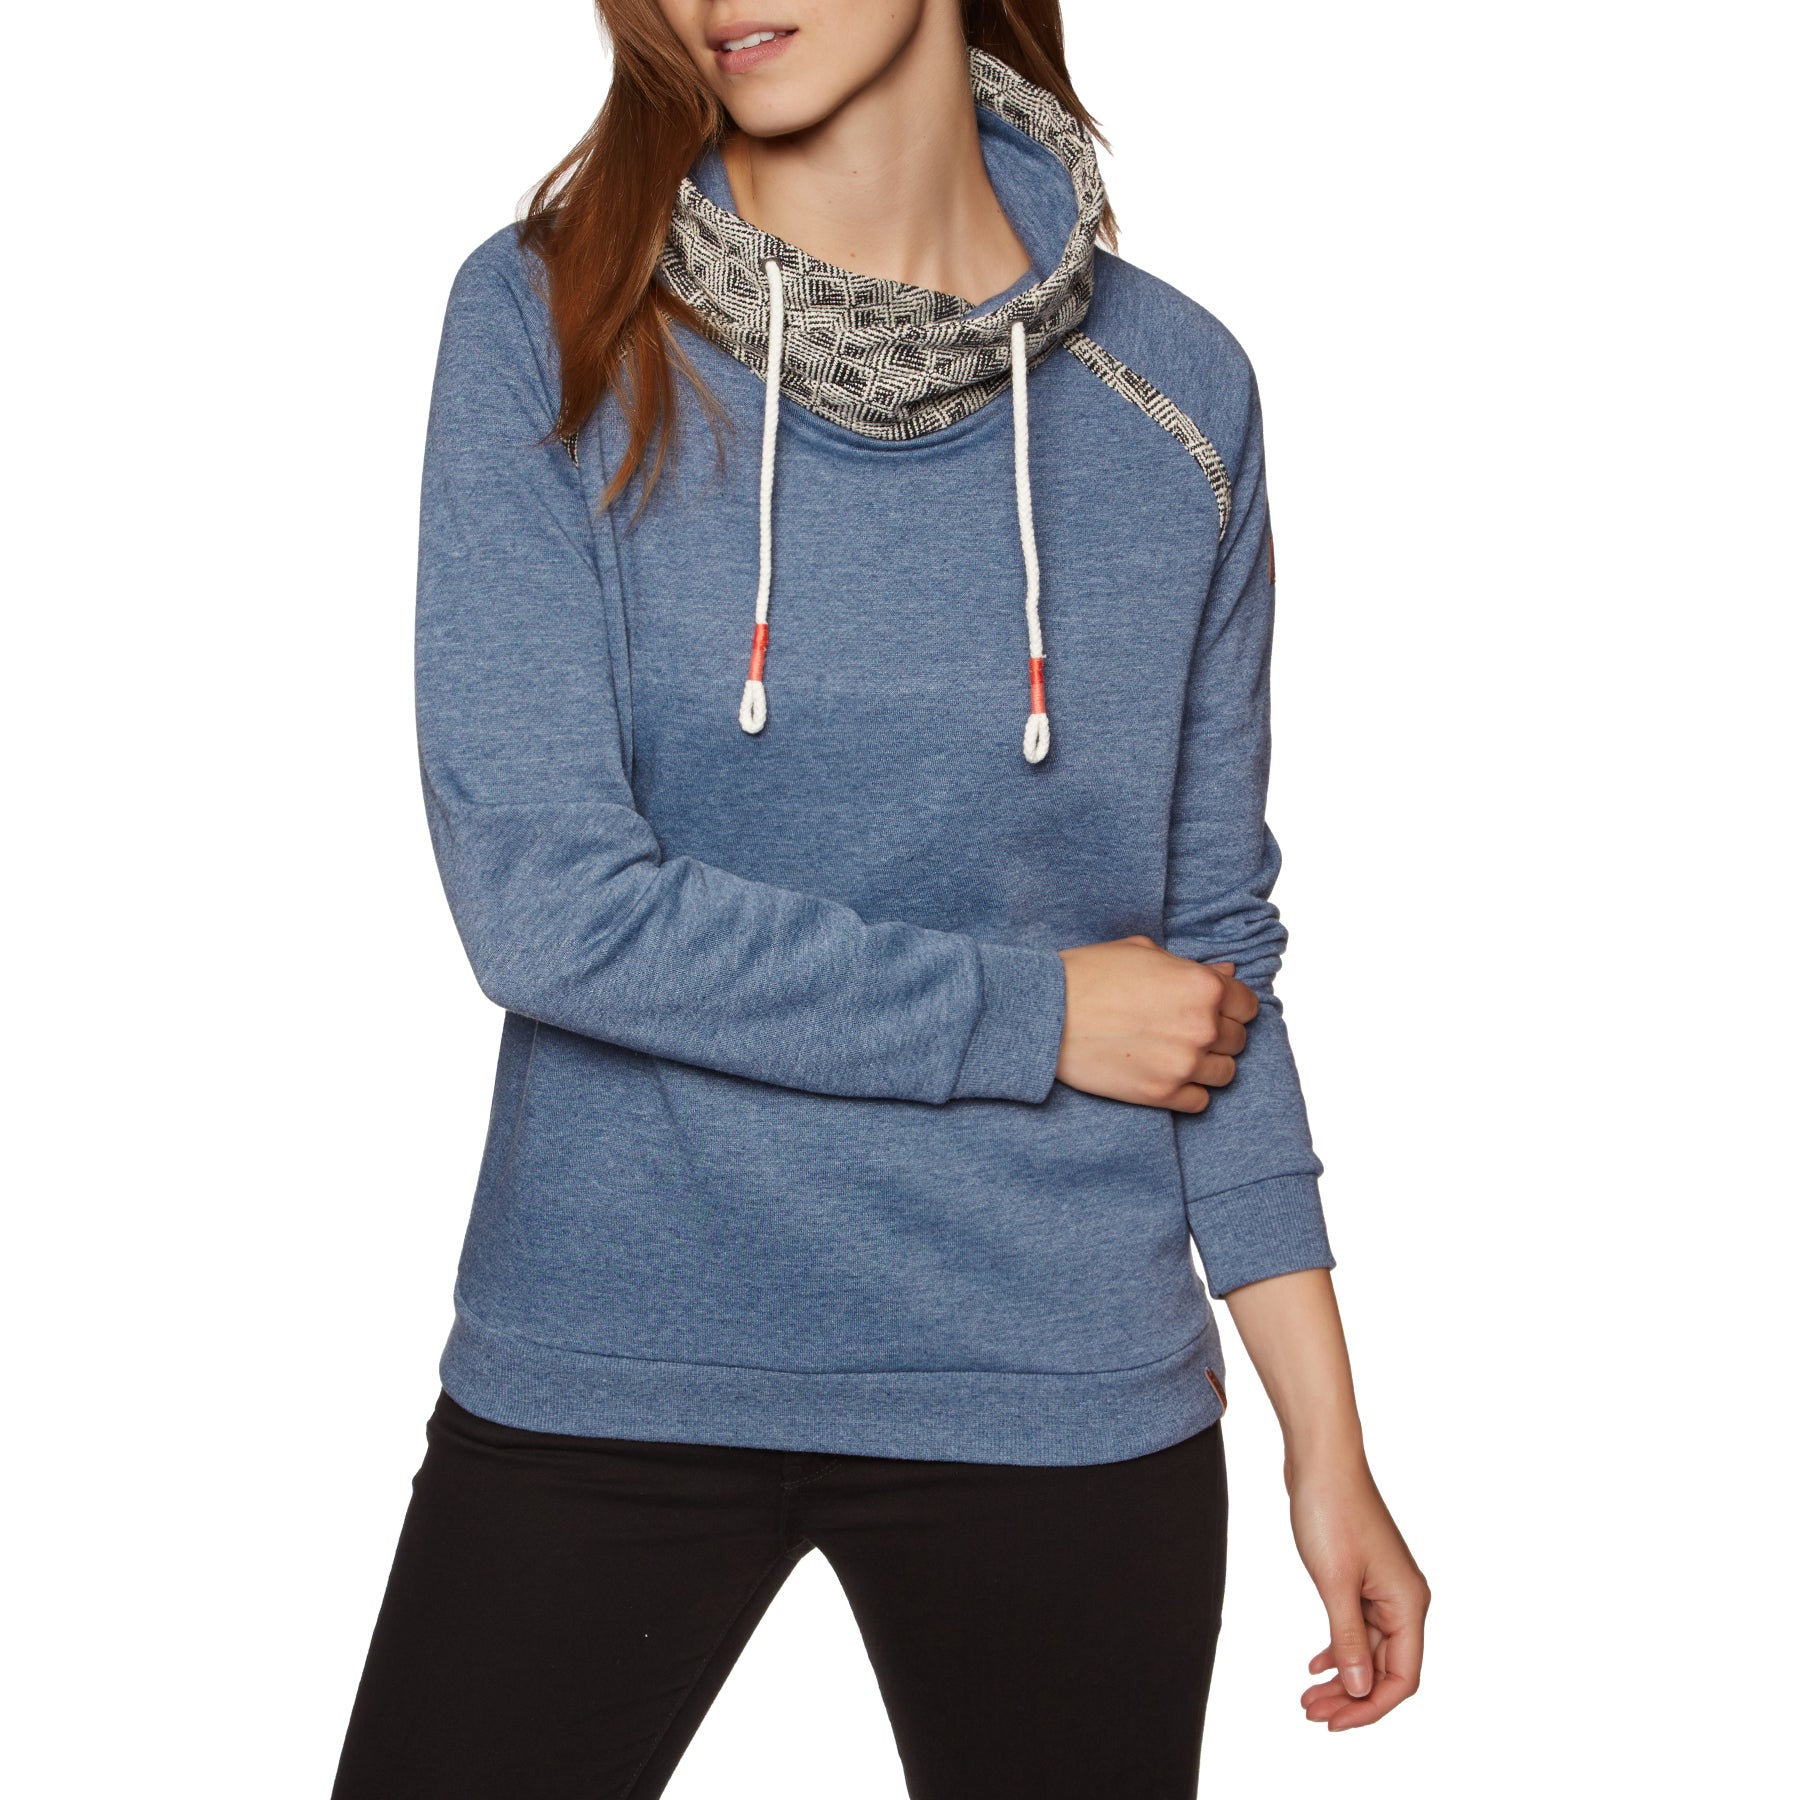 Protest Pooley Womens Sweater - Concrete